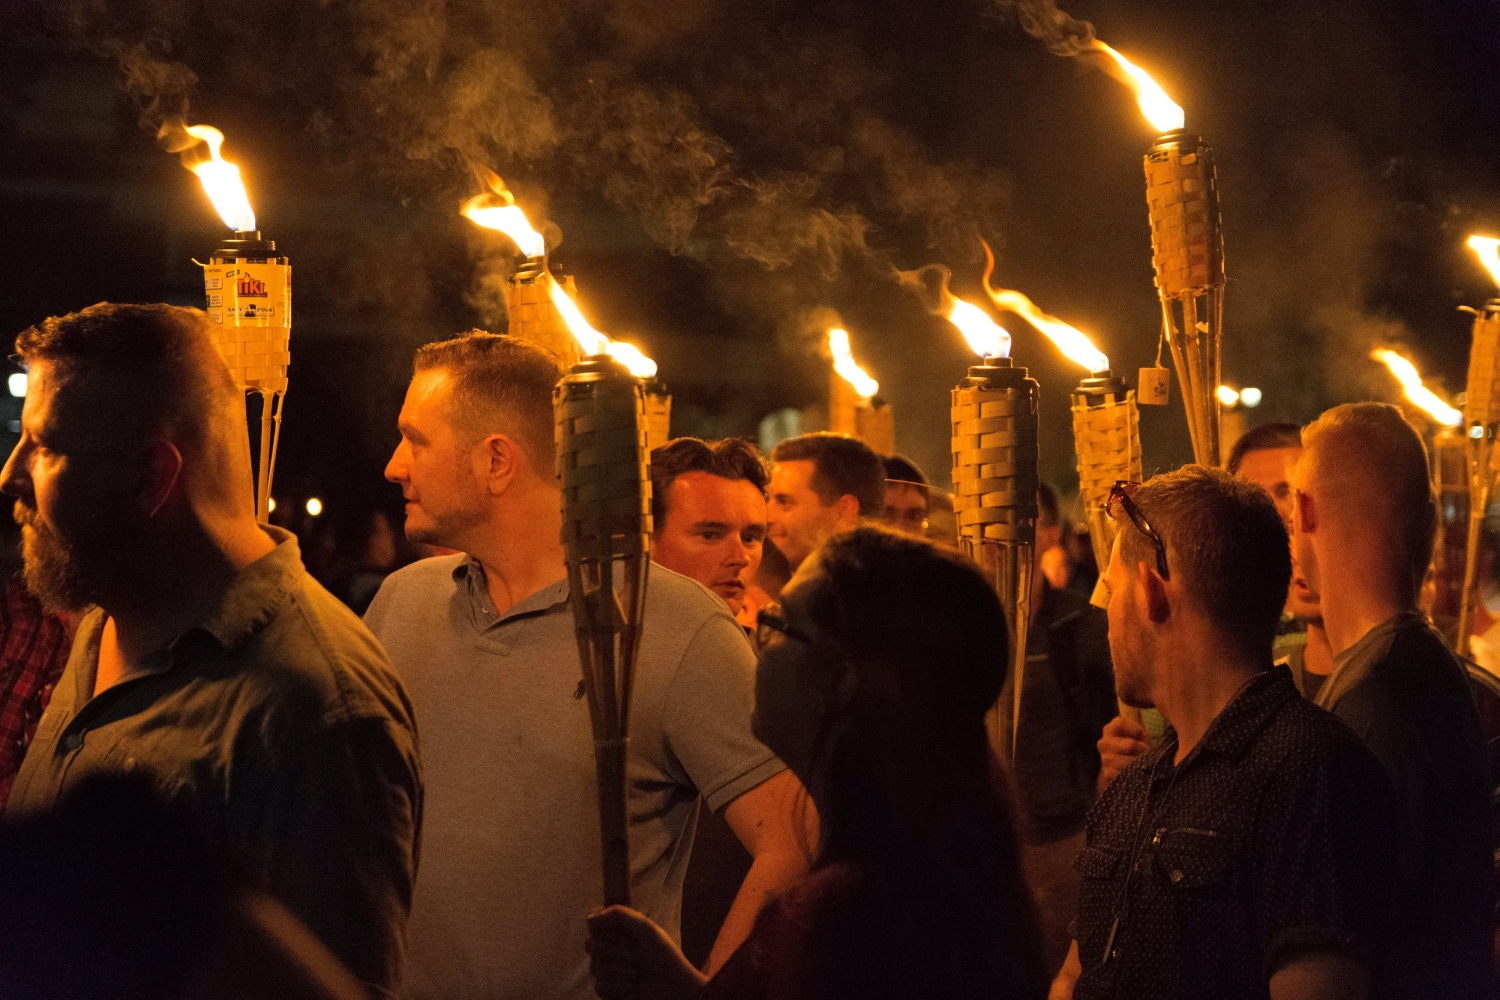 Image White nationalists carry torches on the grounds of the University of Virginia